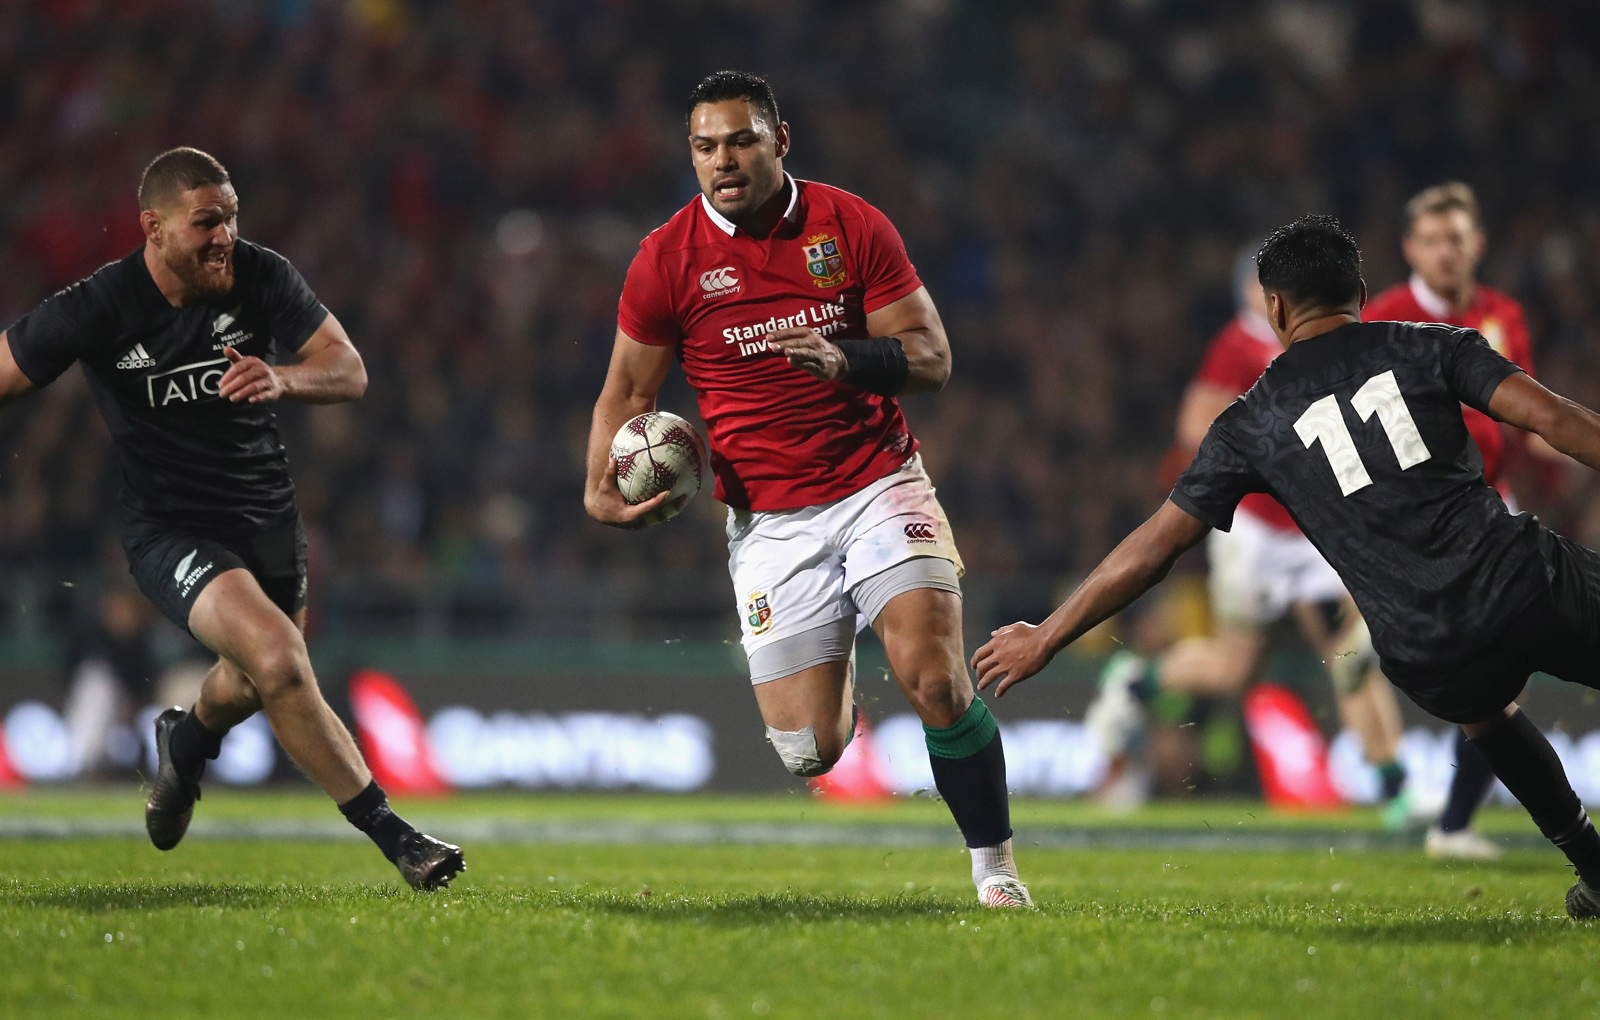 Match Analysis: Maori All Blacks v Lions